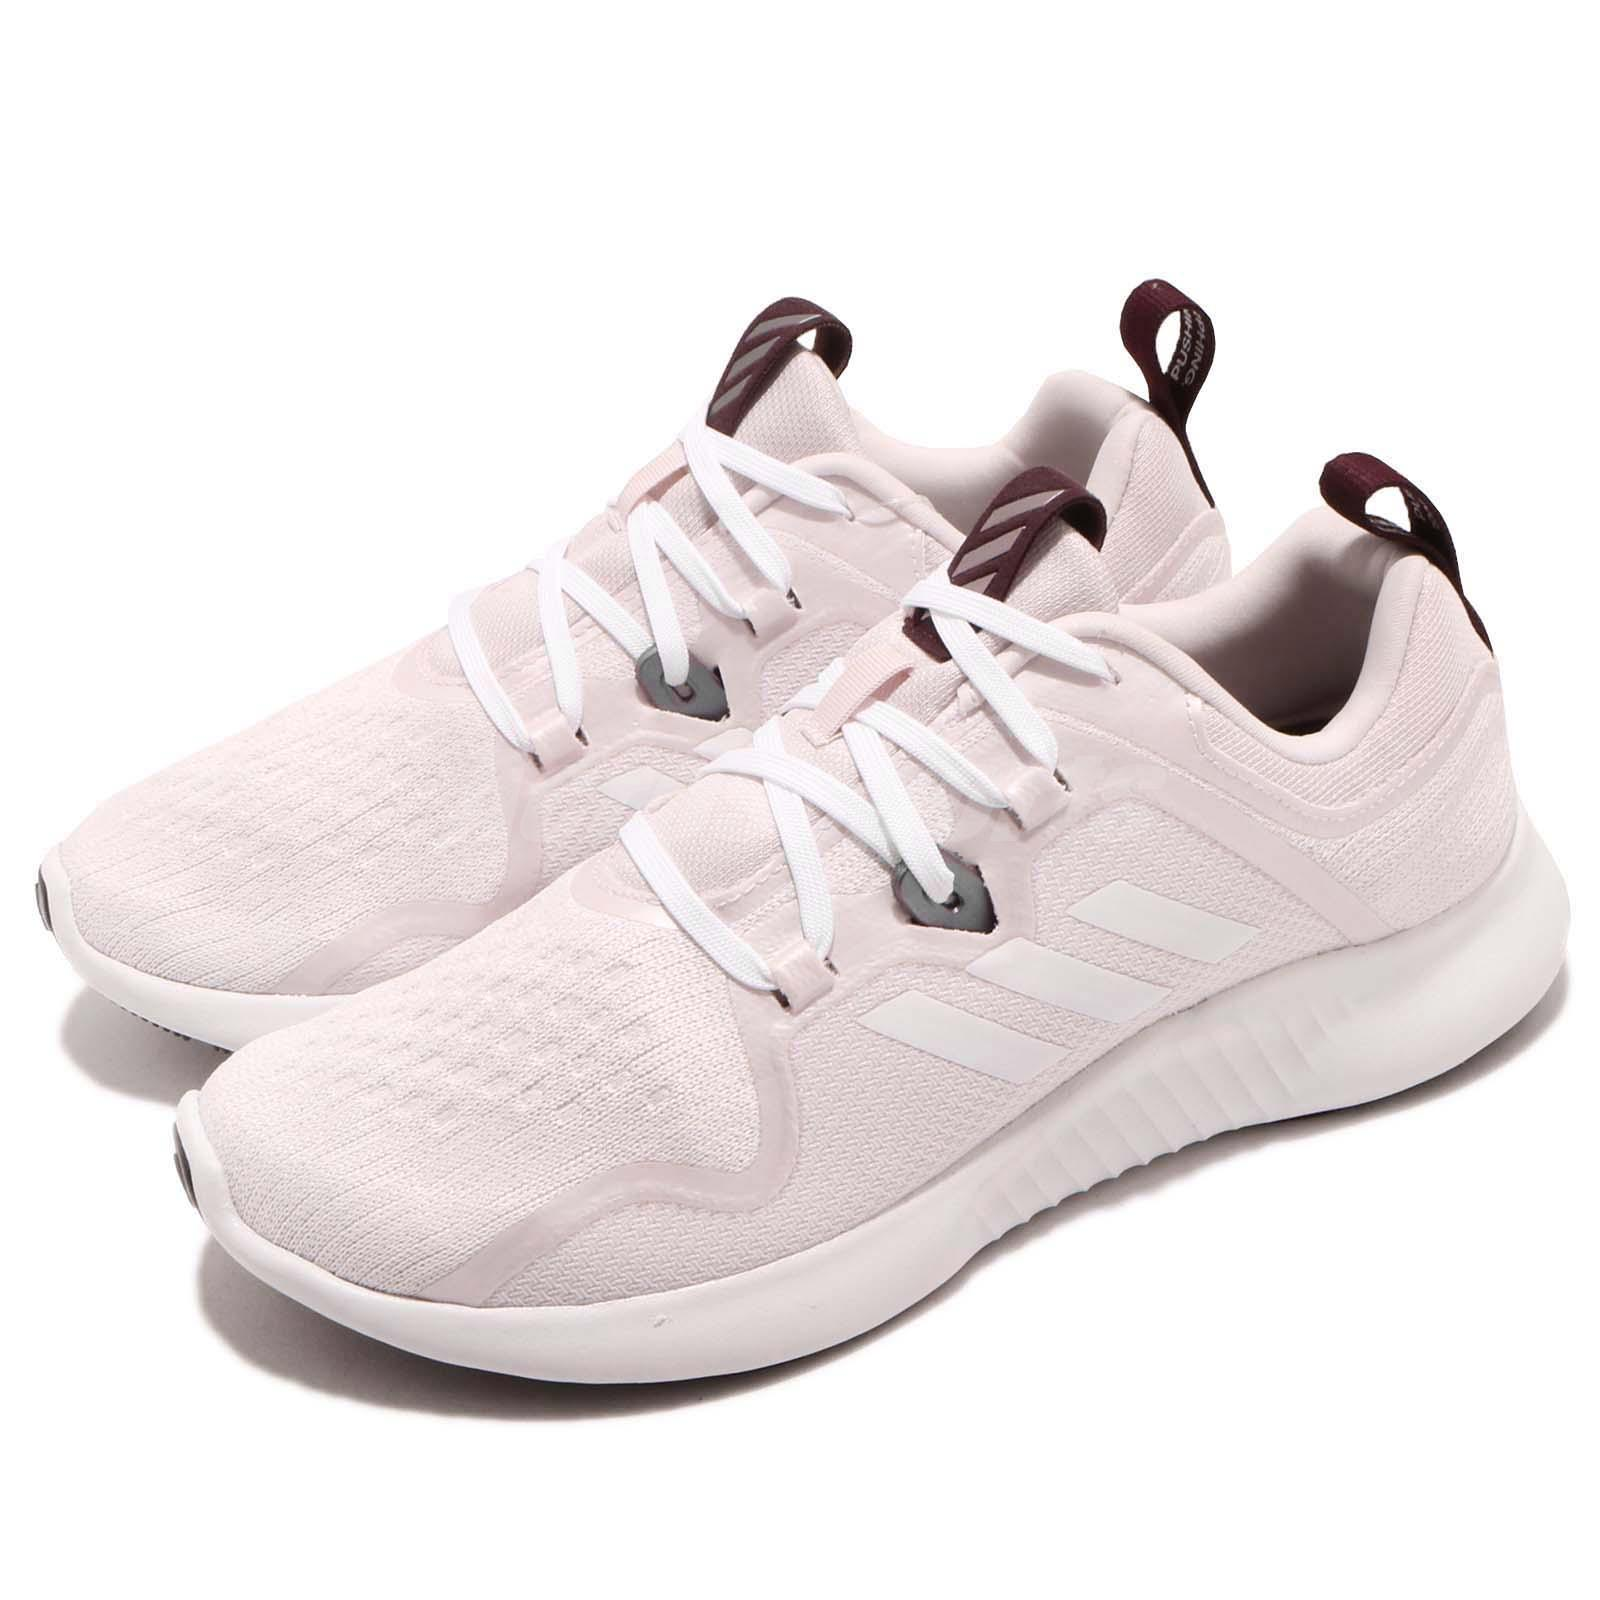 d49faa7dd9 Details about adidas EdgeBOUNCE W Pink White Women Running Training Shoes  Sneakers BB7562